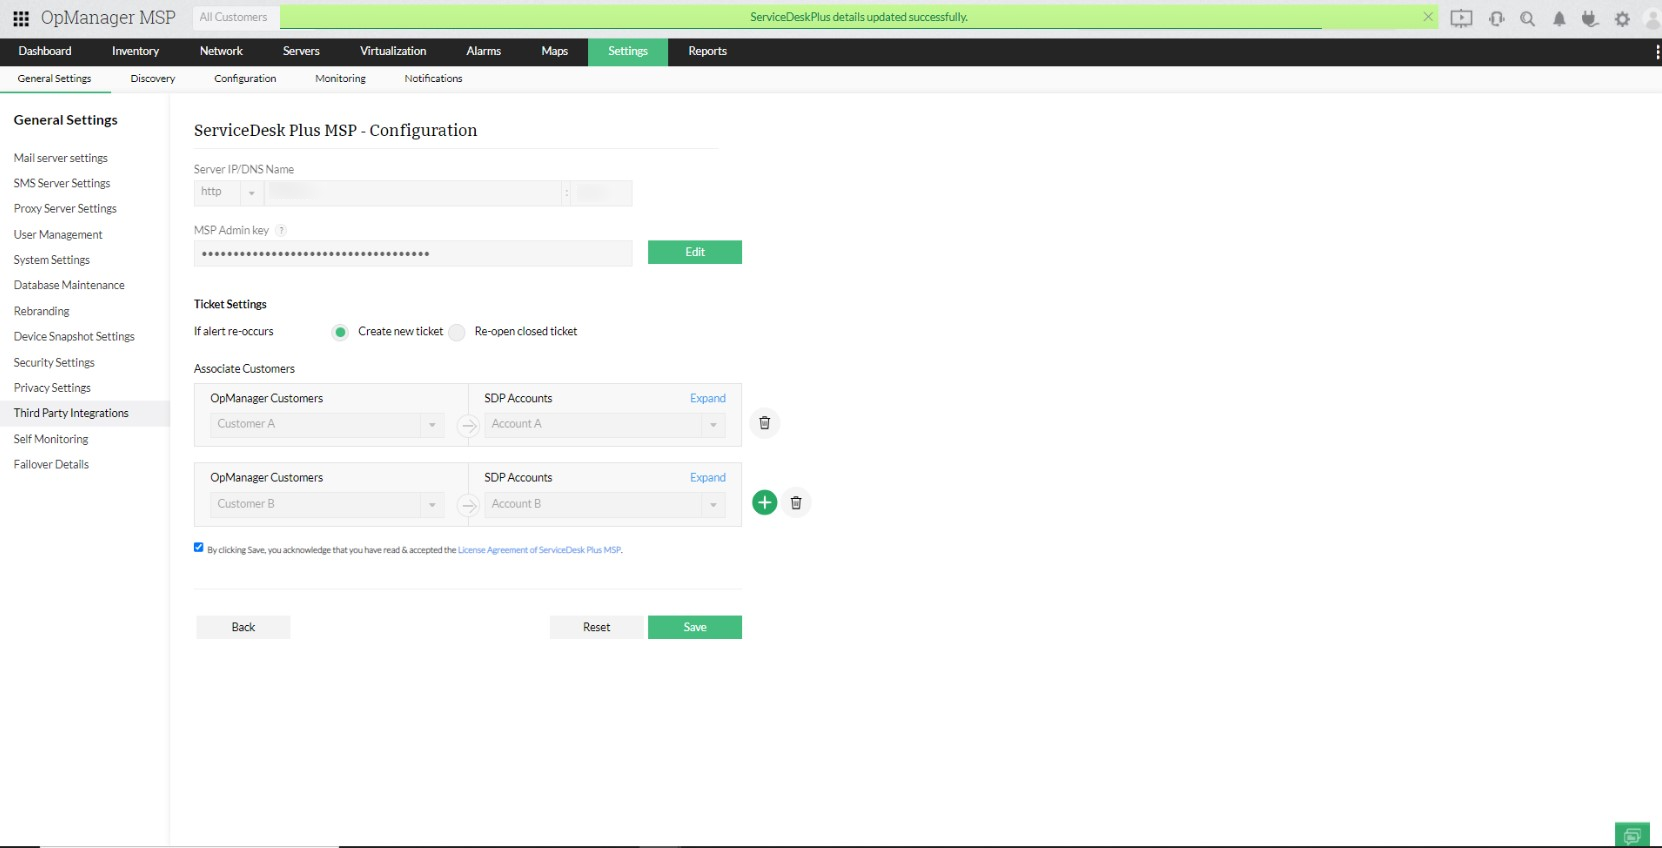 Integrating OpManager MSP with ServiceDesk Plus MSP - ManageEngine OpManager MSP